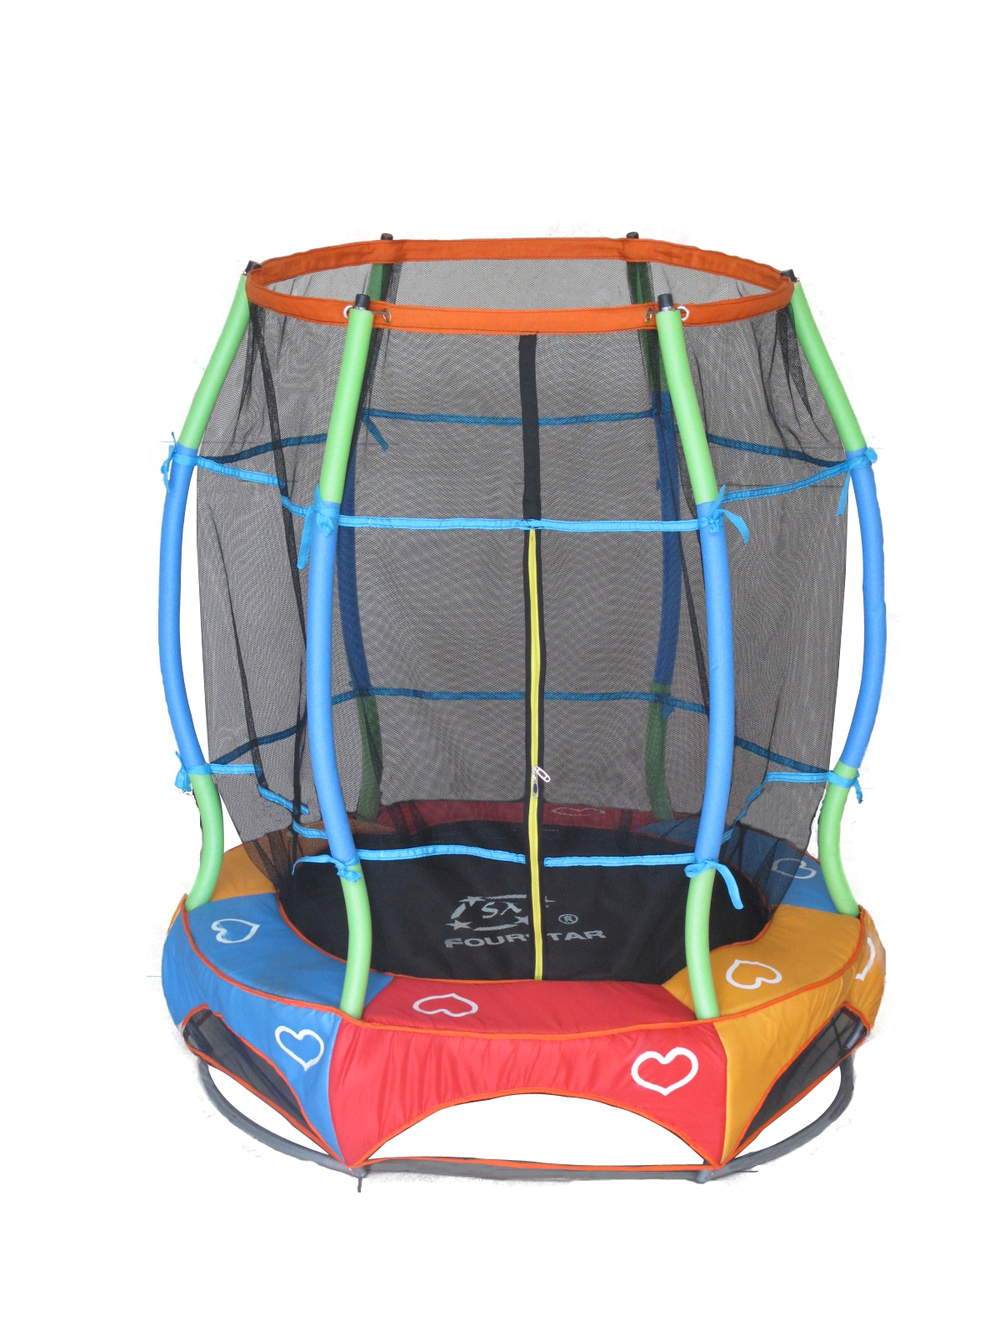 55inch indoor mini gymnastics trampolines for kids